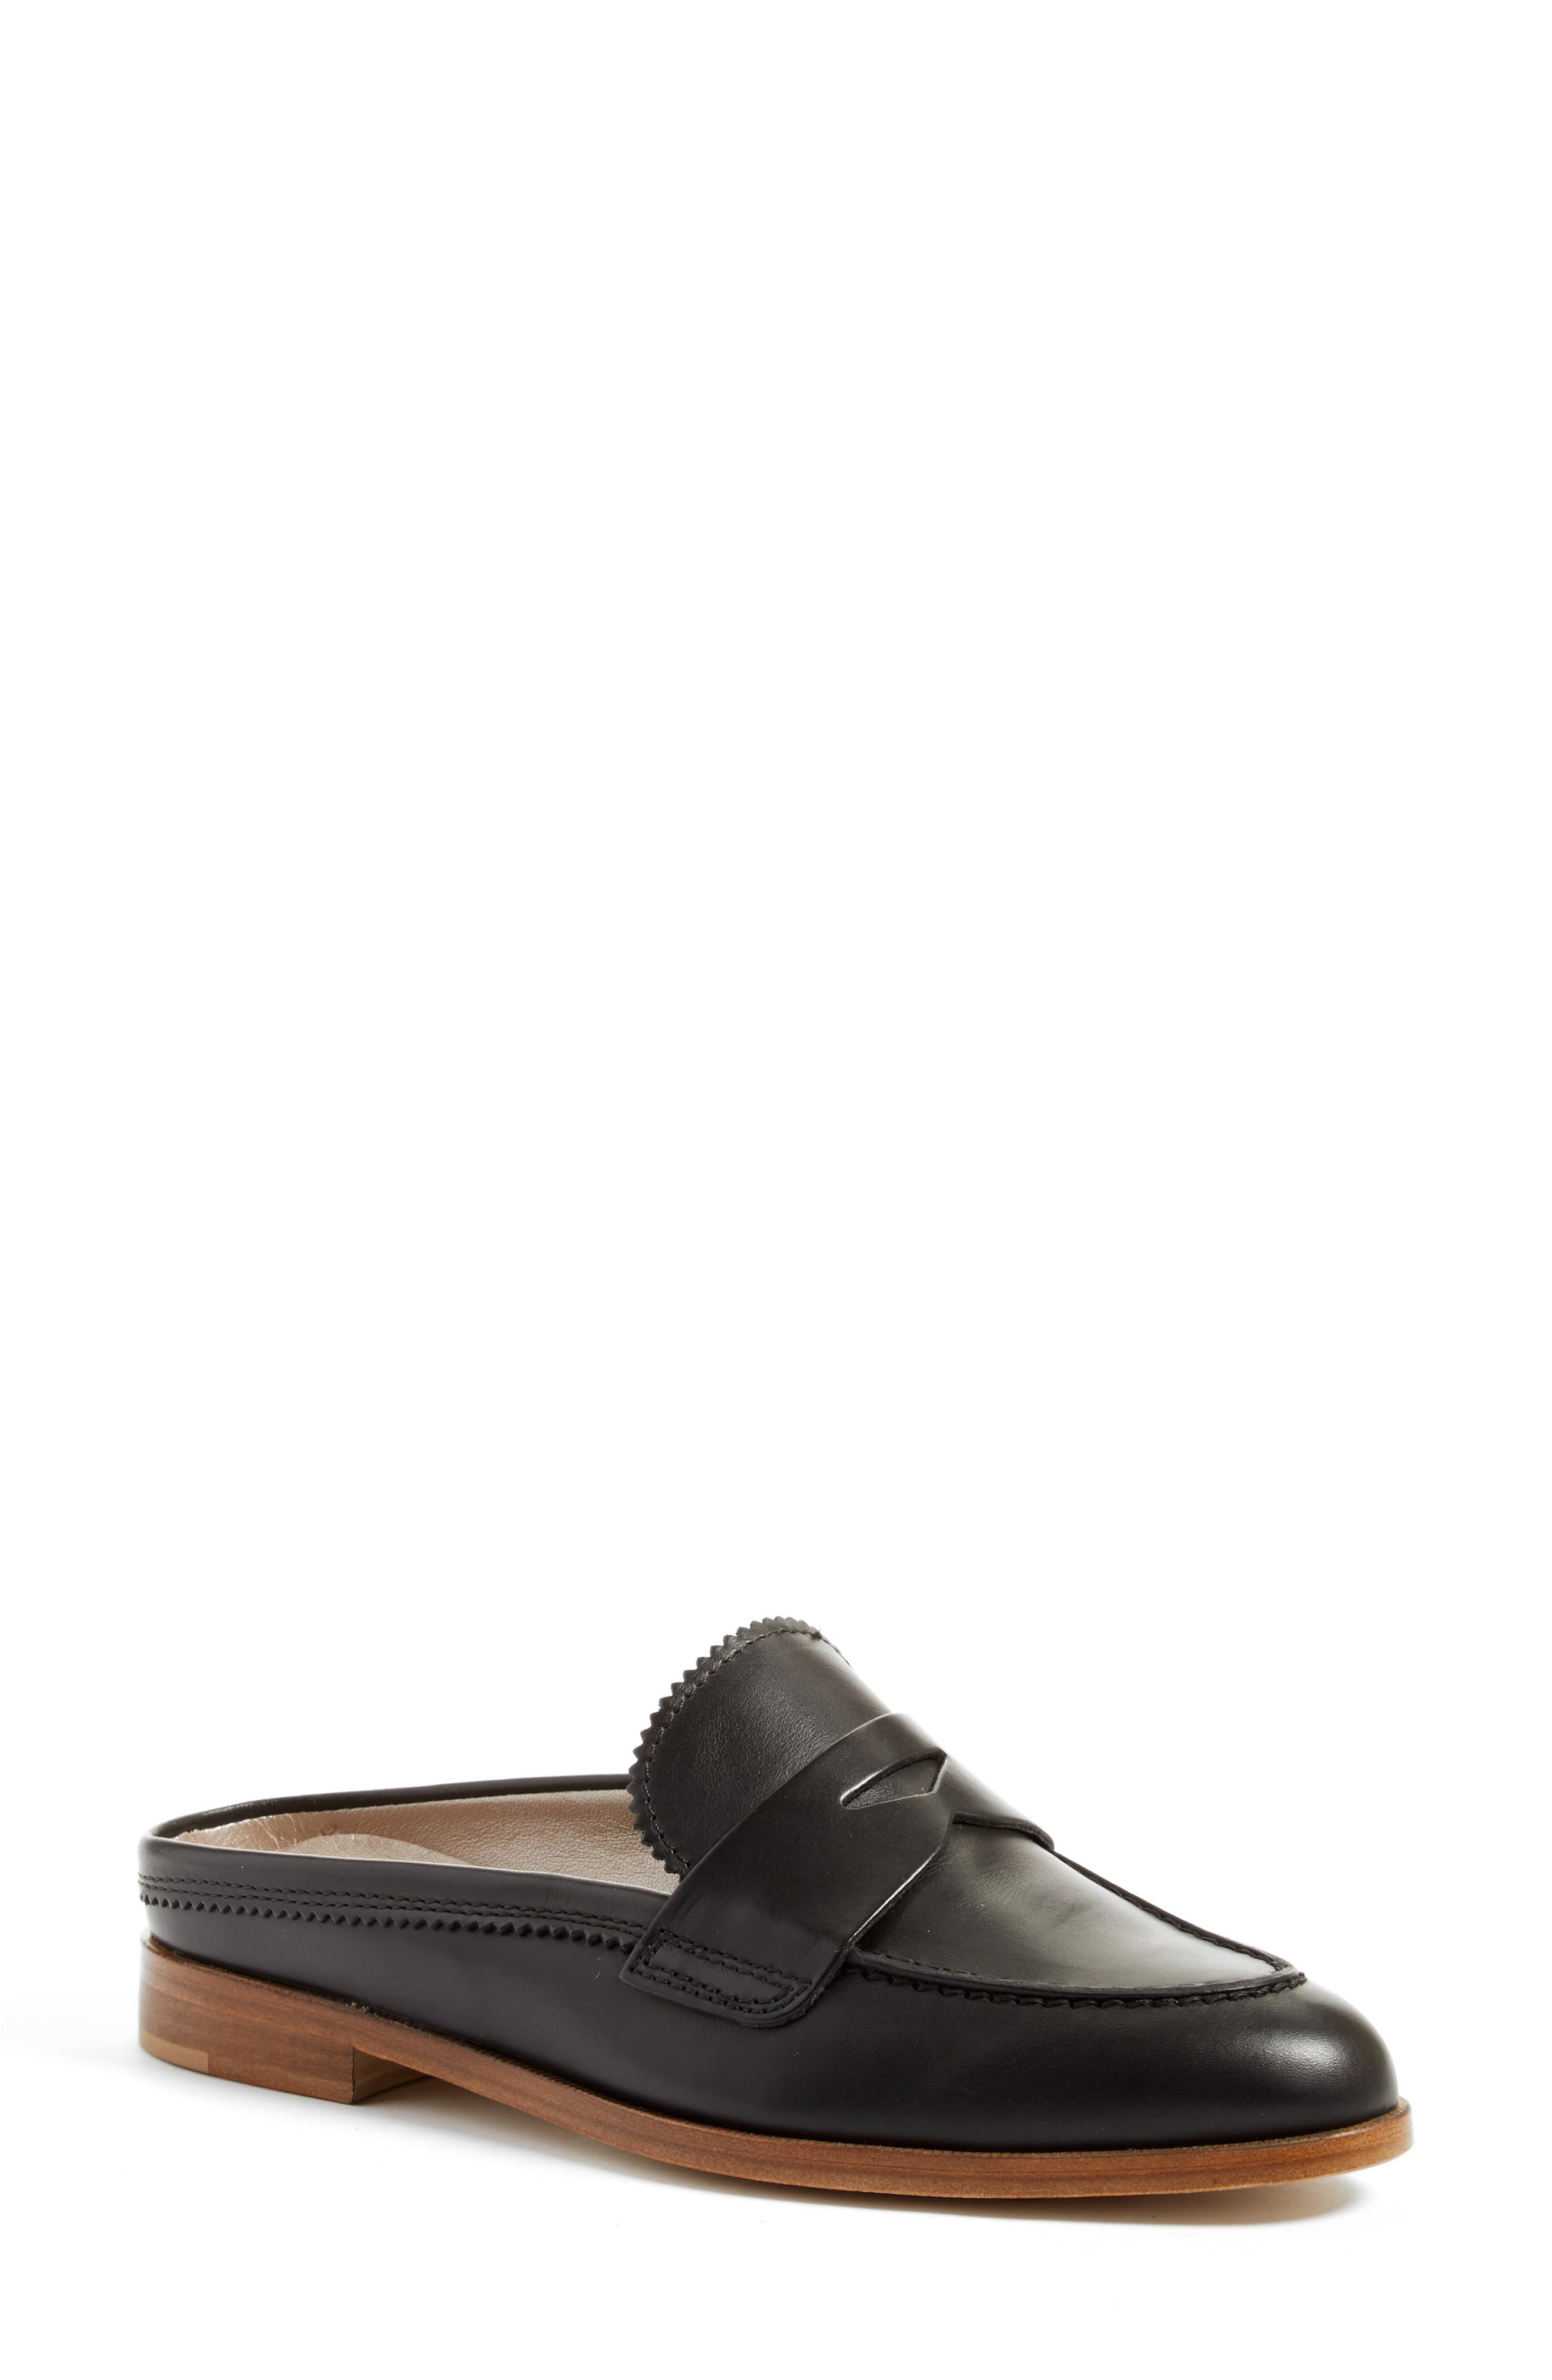 AGL Penny Loafer Mule, Main, color, 001